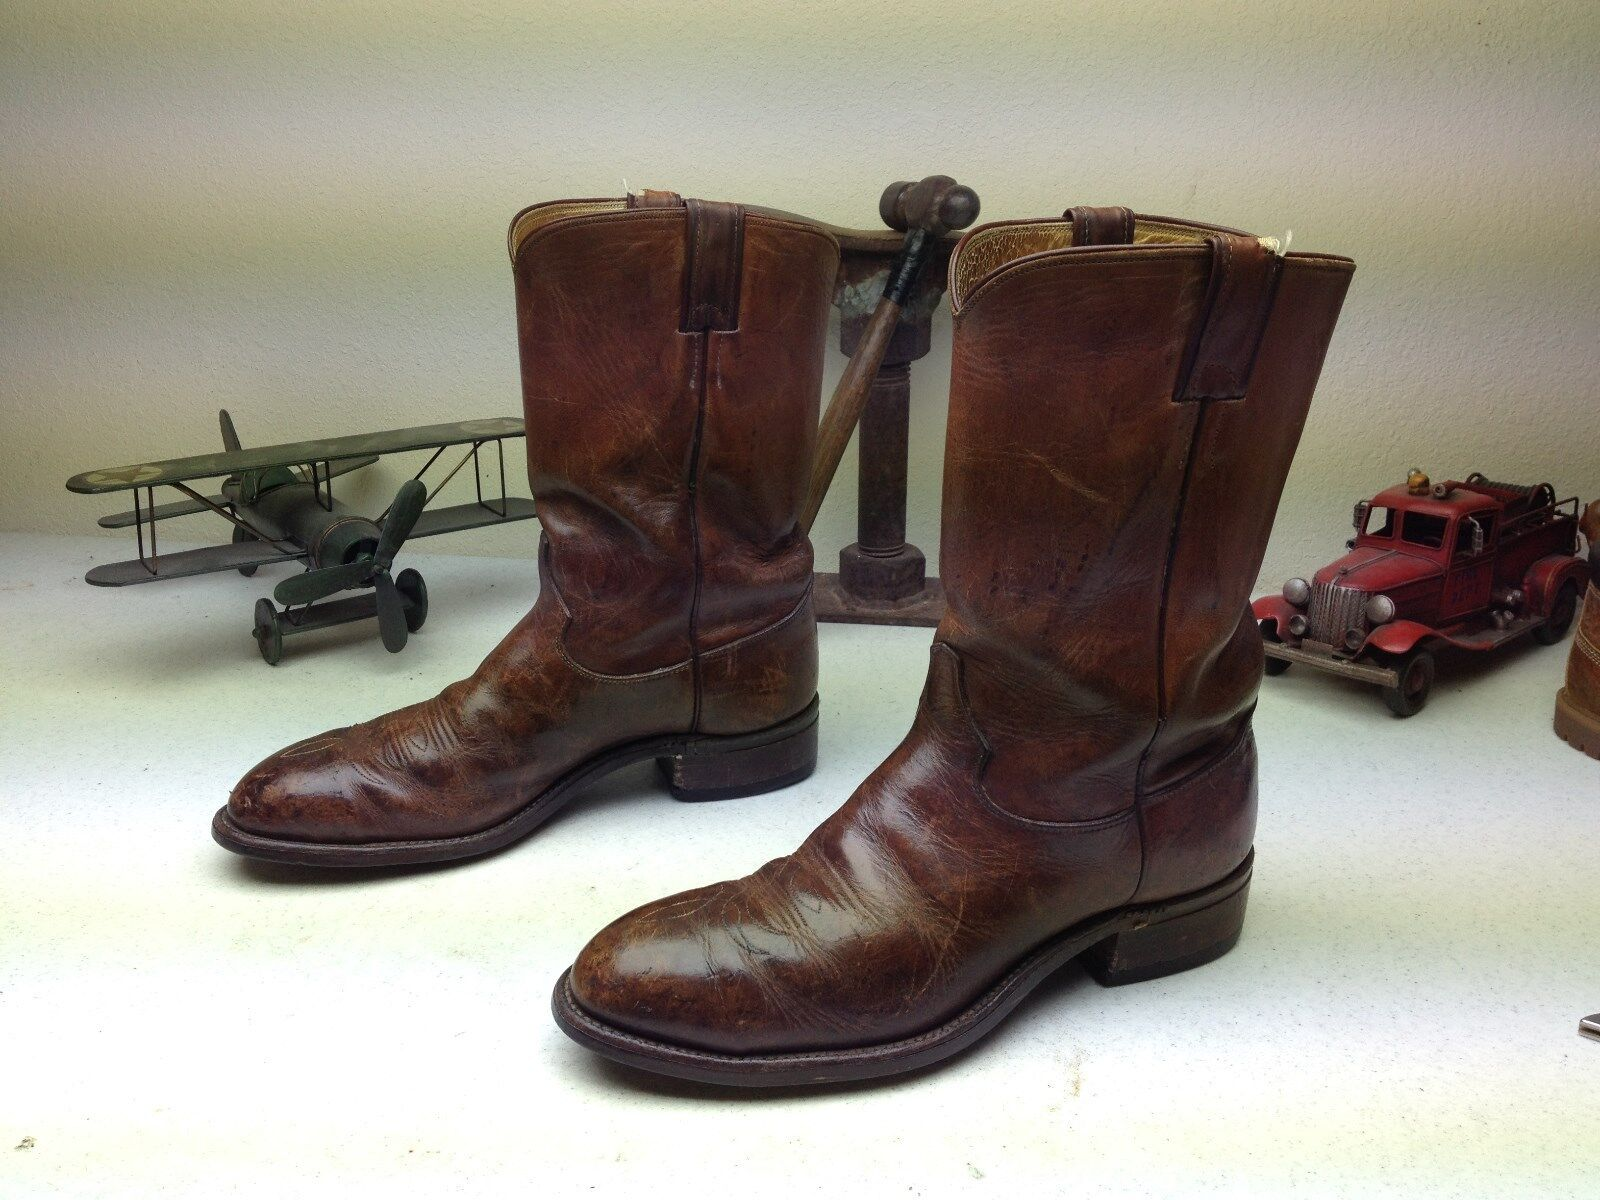 VTG DISTRESSED USA JUSTIN ENGINEER WORK BROWN LEATHER MOTORCYCLE BOOTS 11.5 B